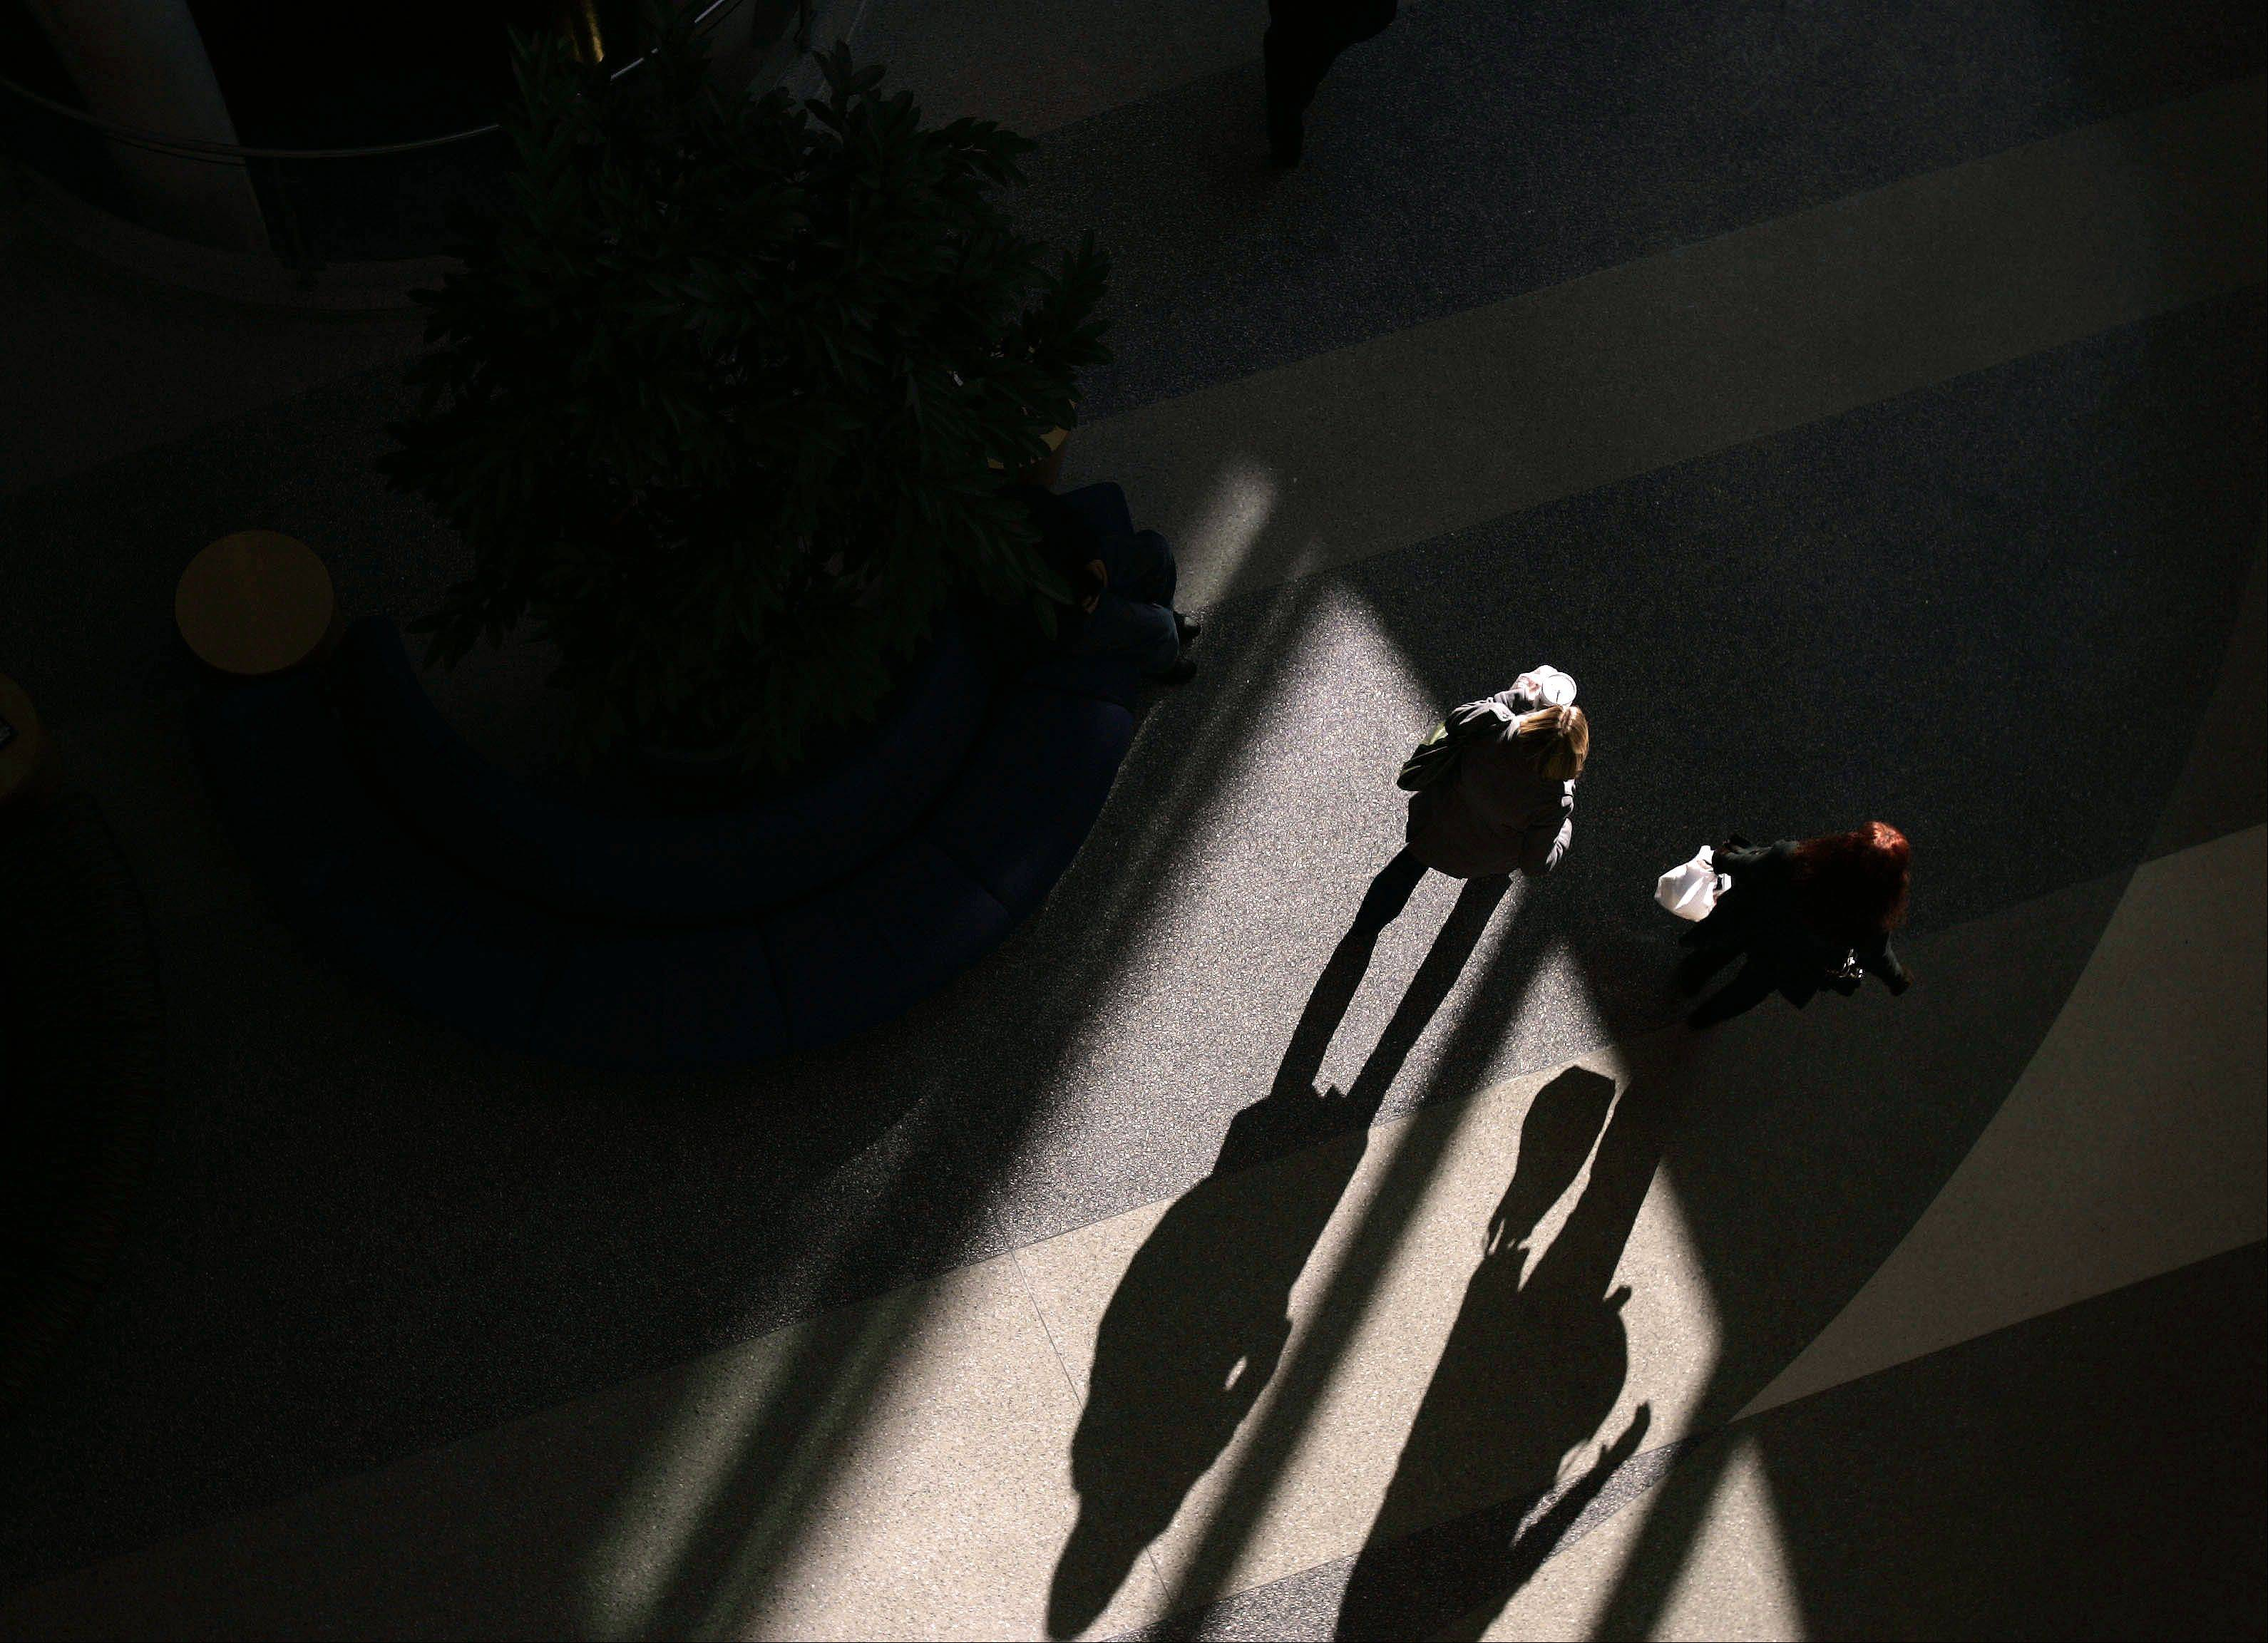 The play of light and the shadows can often change a normal scene into something altogether unrecognizable. I was at Sherman Hospital in Elgin recently on assignment when I went upstairs in the lobby to get a different angle and saw this scene below.